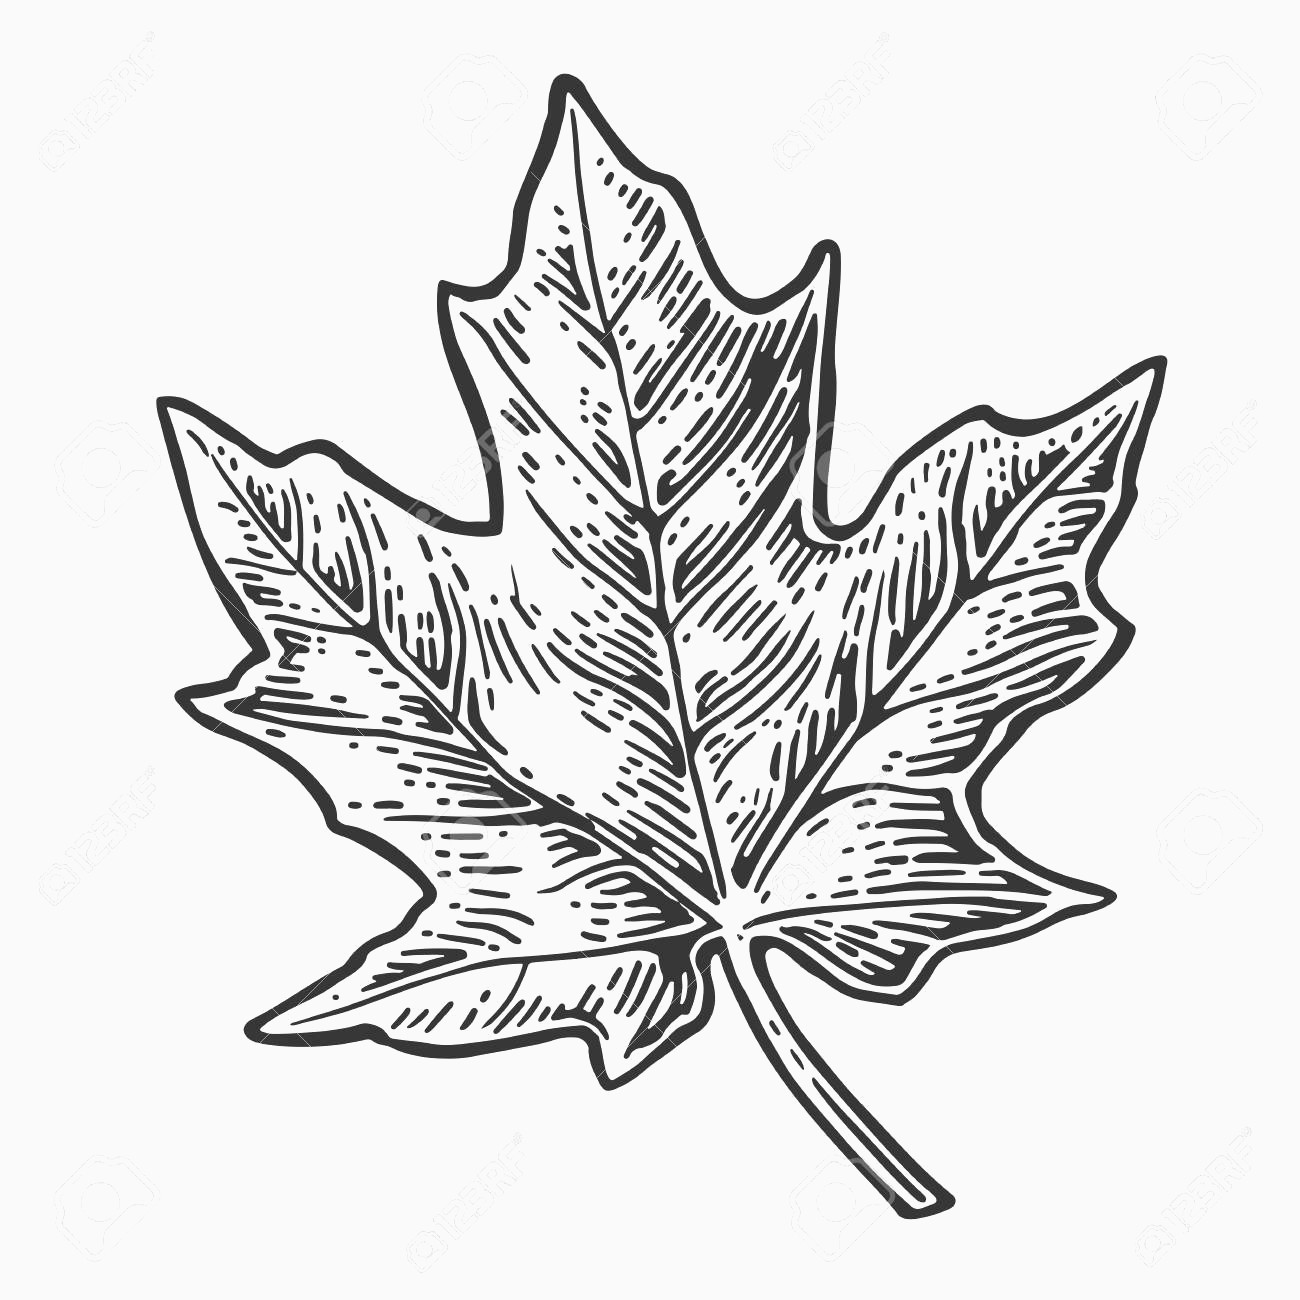 1300x1300 Maple Leaf Vector Luxury Maple Leaf Vector Vintage Engraved